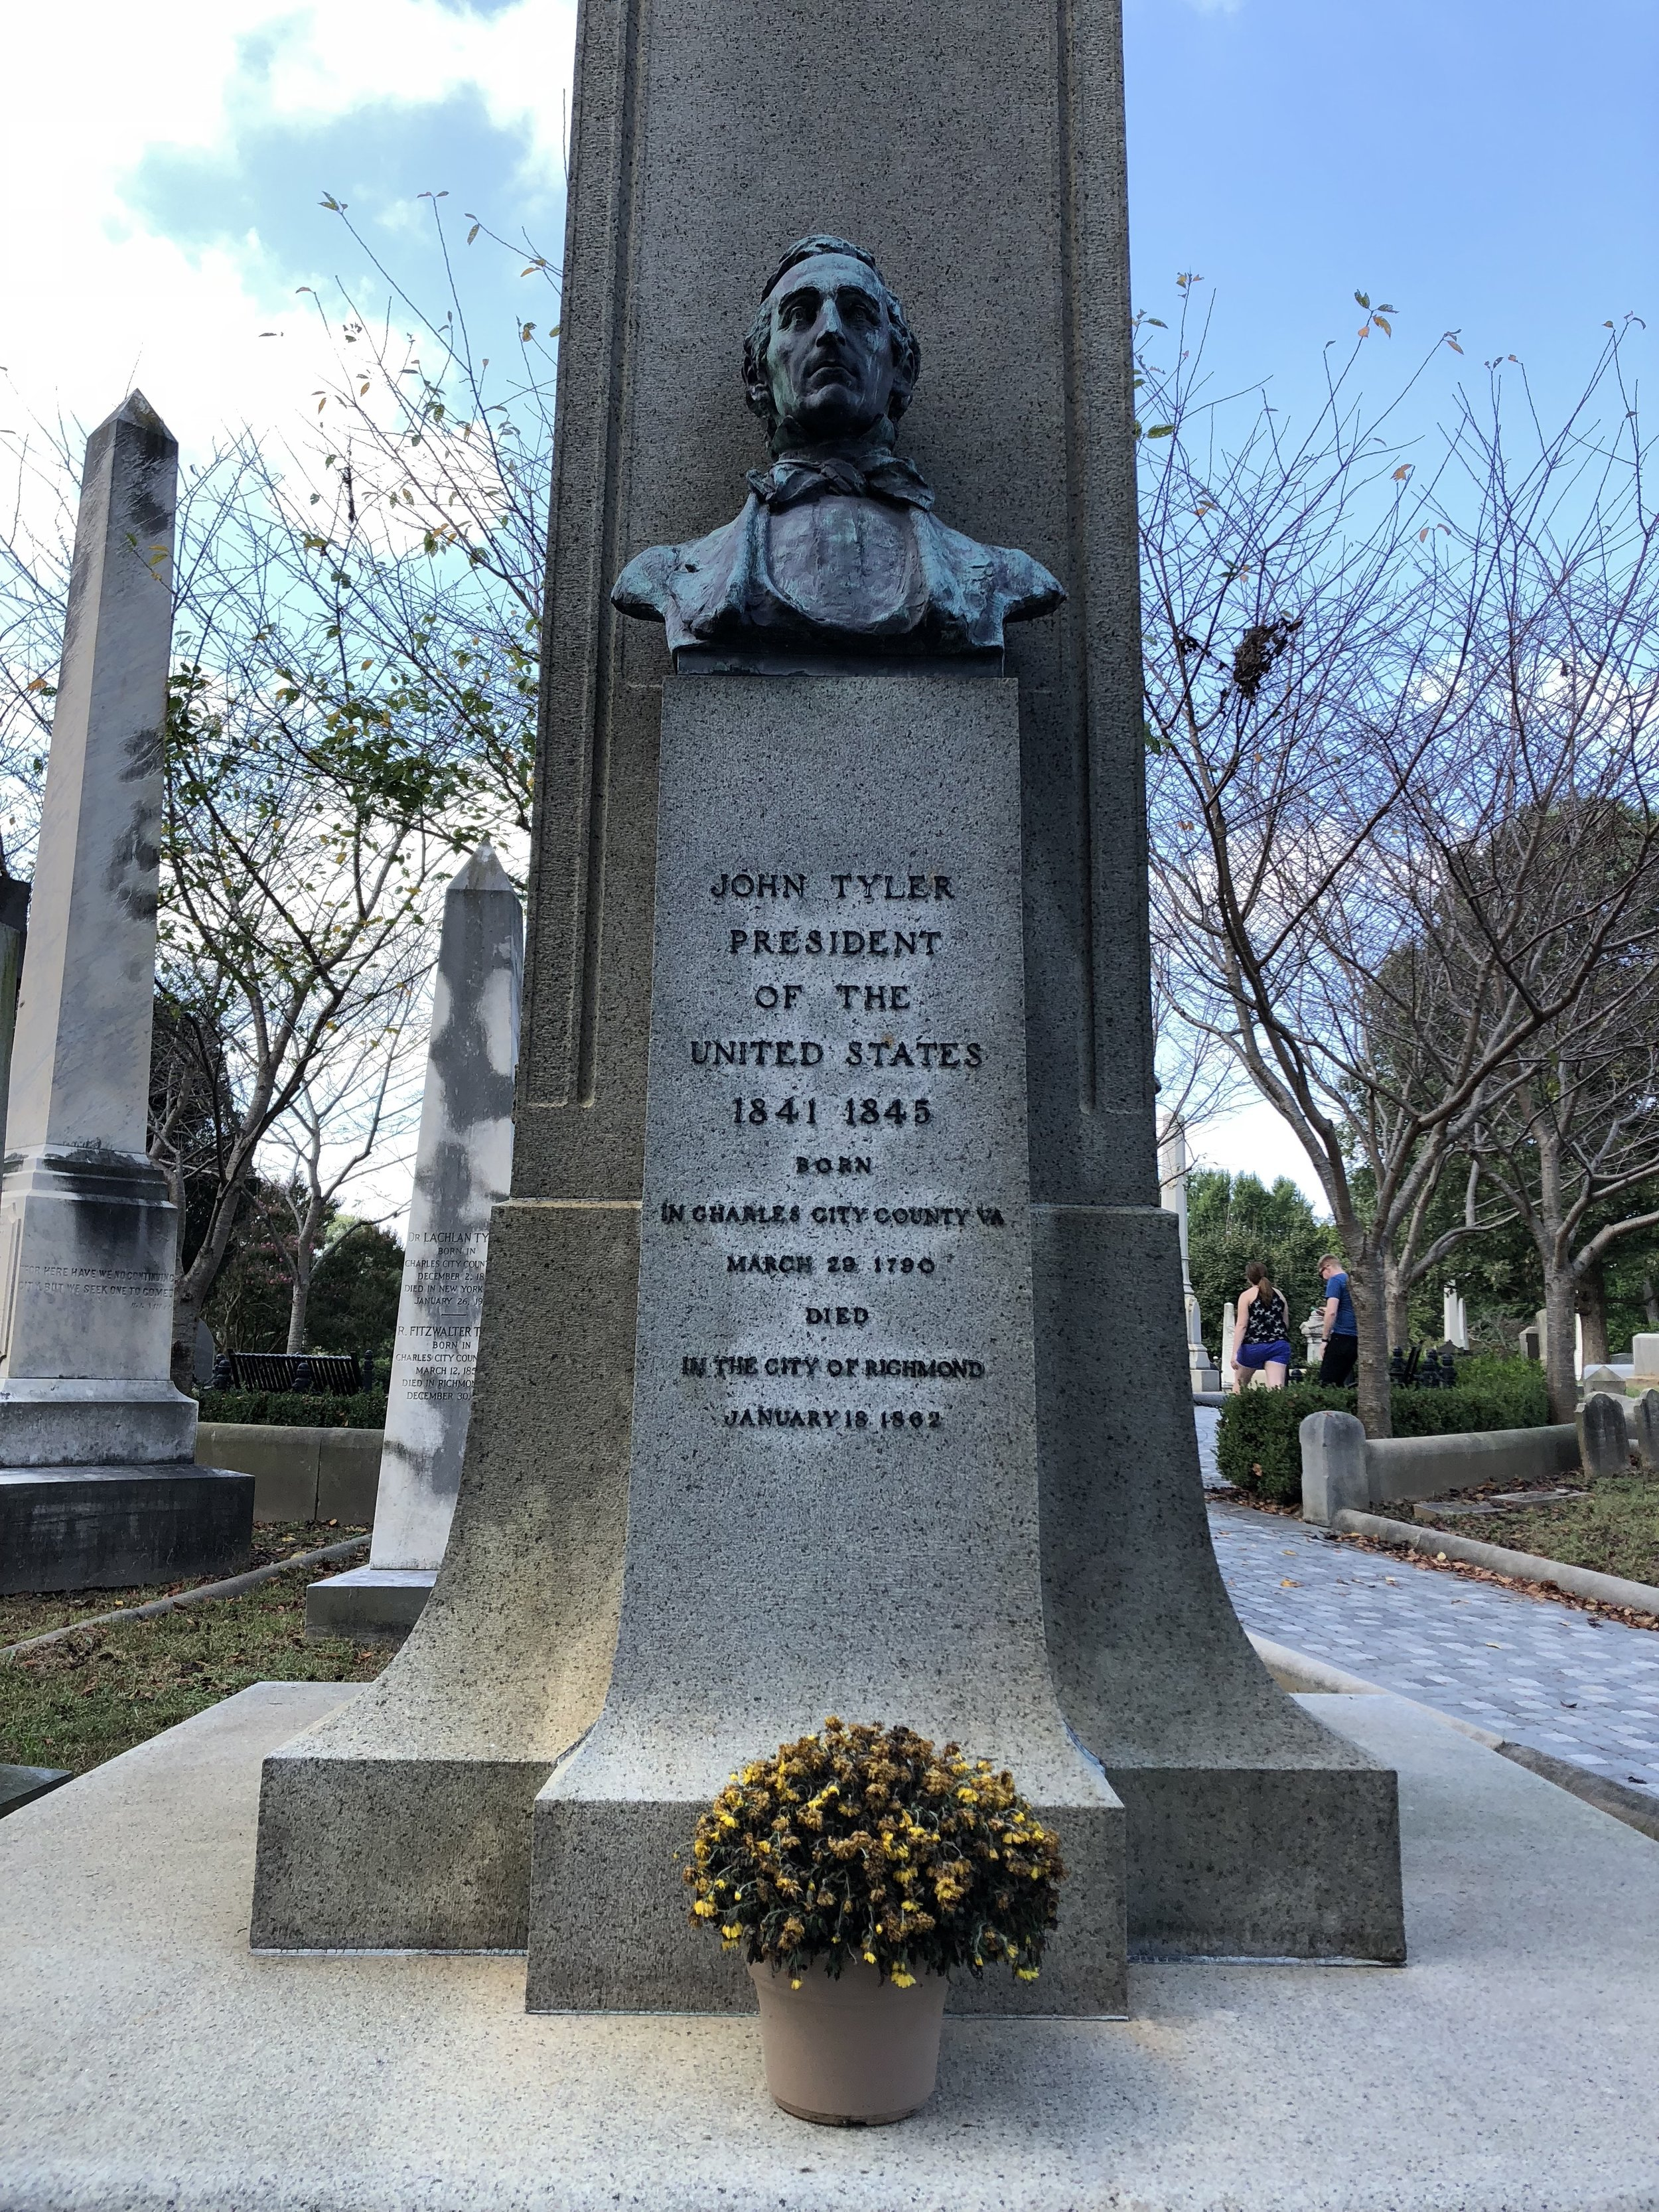 John Tyler's gravesite in Hollywood Cemetery in Richmond.